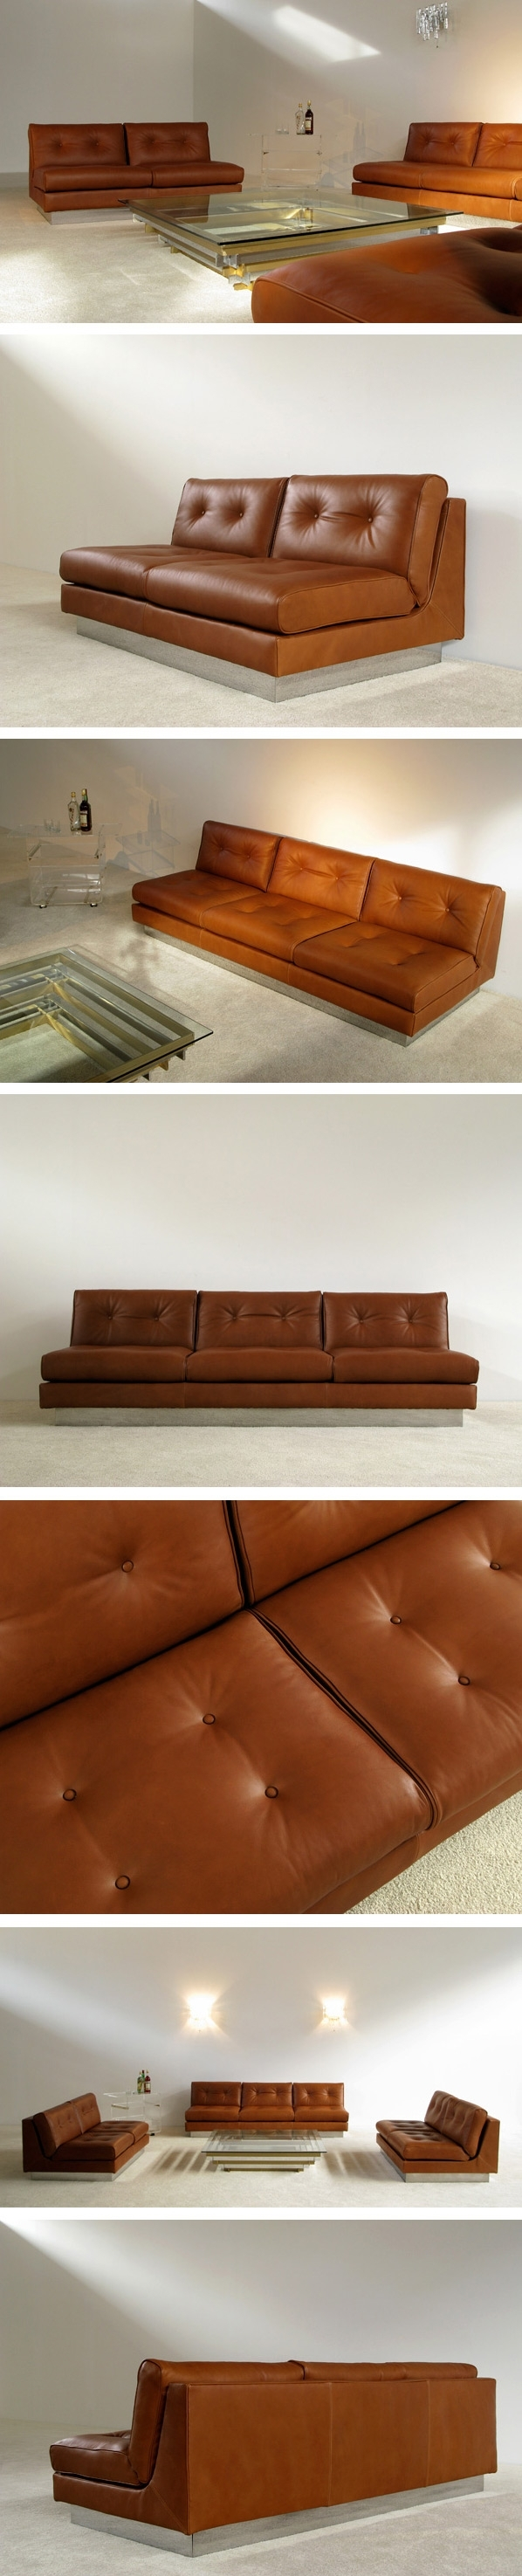 Cognac Sofa. Cognac Color Leather Sofa Vintage Danish For Sale At in Tenny Cognac 2 Piece Right Facing Chaise Sectionals With 2 Headrest (Image 10 of 30)